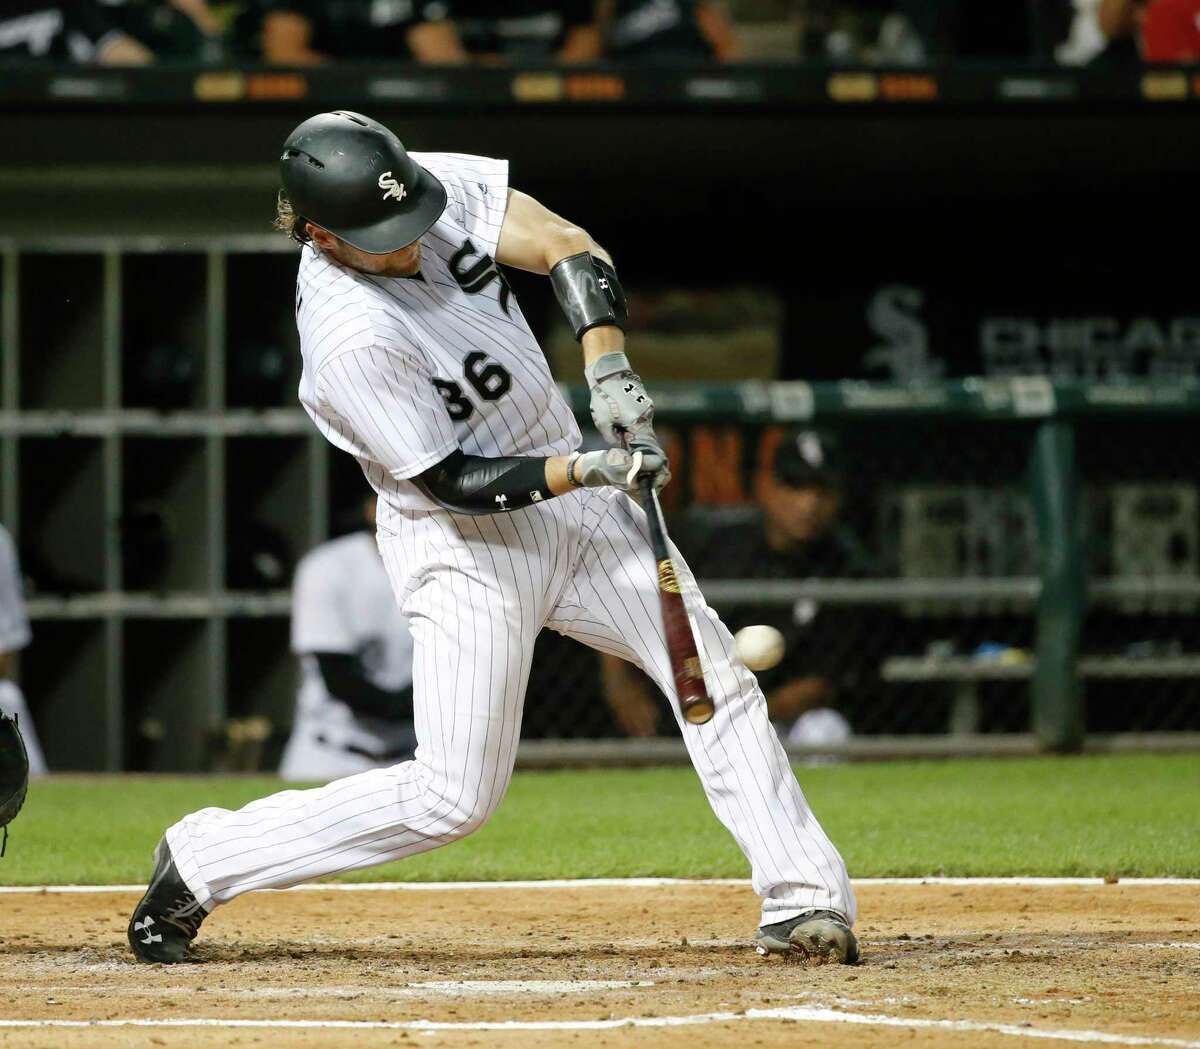 Chicago White Sox's Kevan Smith hits a two-run double off Houston Astros starting pitcher Dallas Keuchel during the third inning of a baseball game Tuesday, Aug. 8, 2017, in Chicago. Jose Abreu and Avisail Garcia scored on the play. (AP Photo/Charles Rex Arbogast)